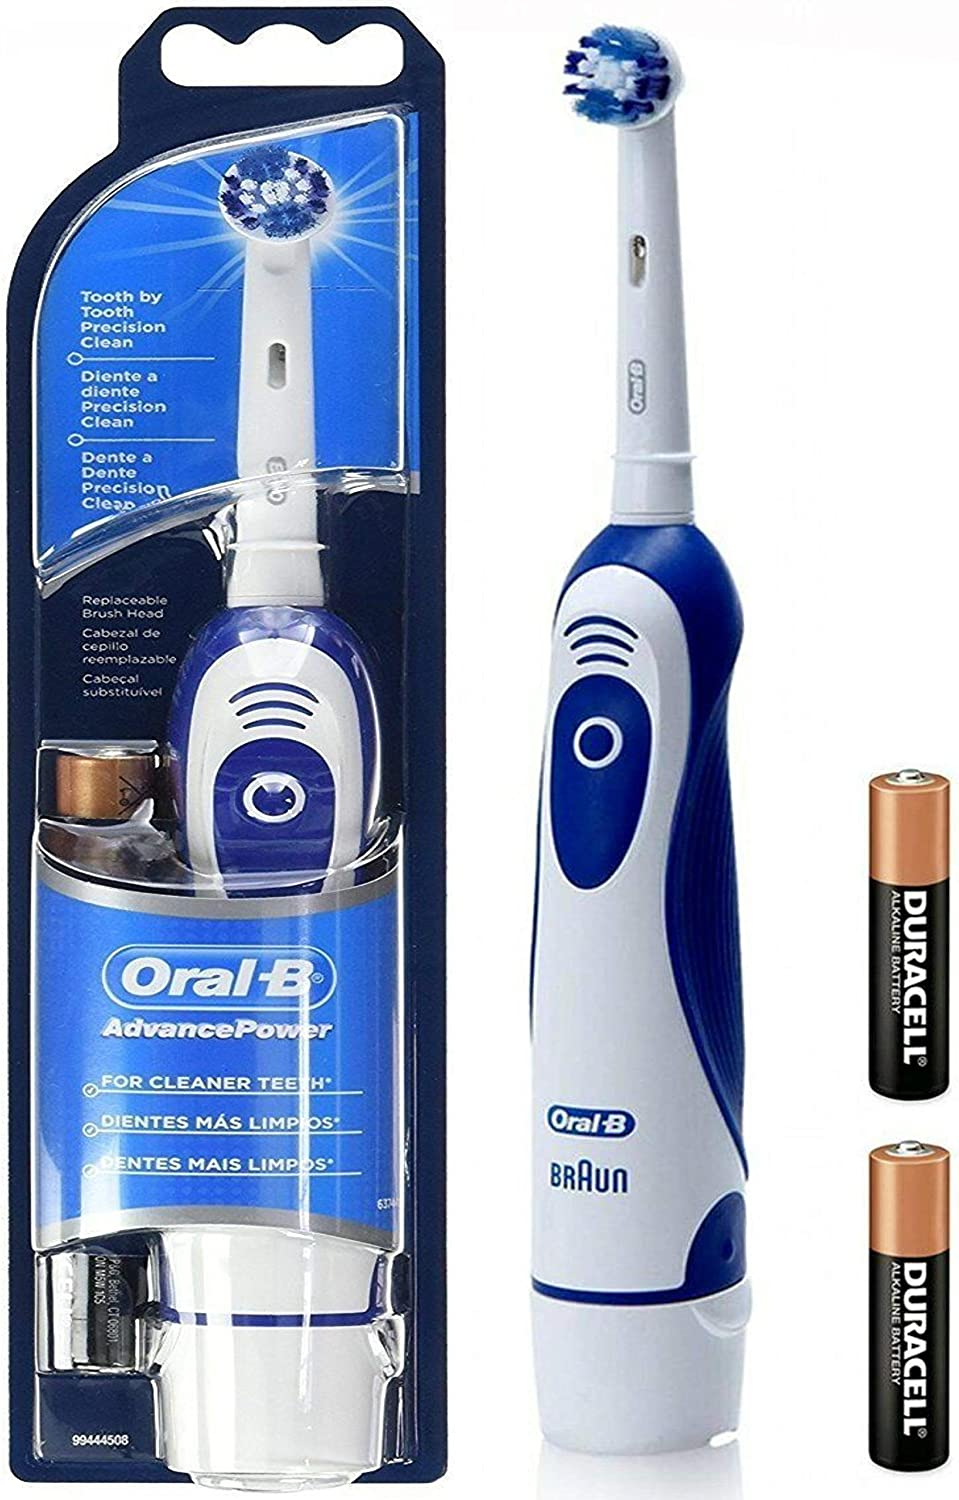 Braun Oral B Advanced Power 400 Battery Operated Toothbrush (Colour Varies)